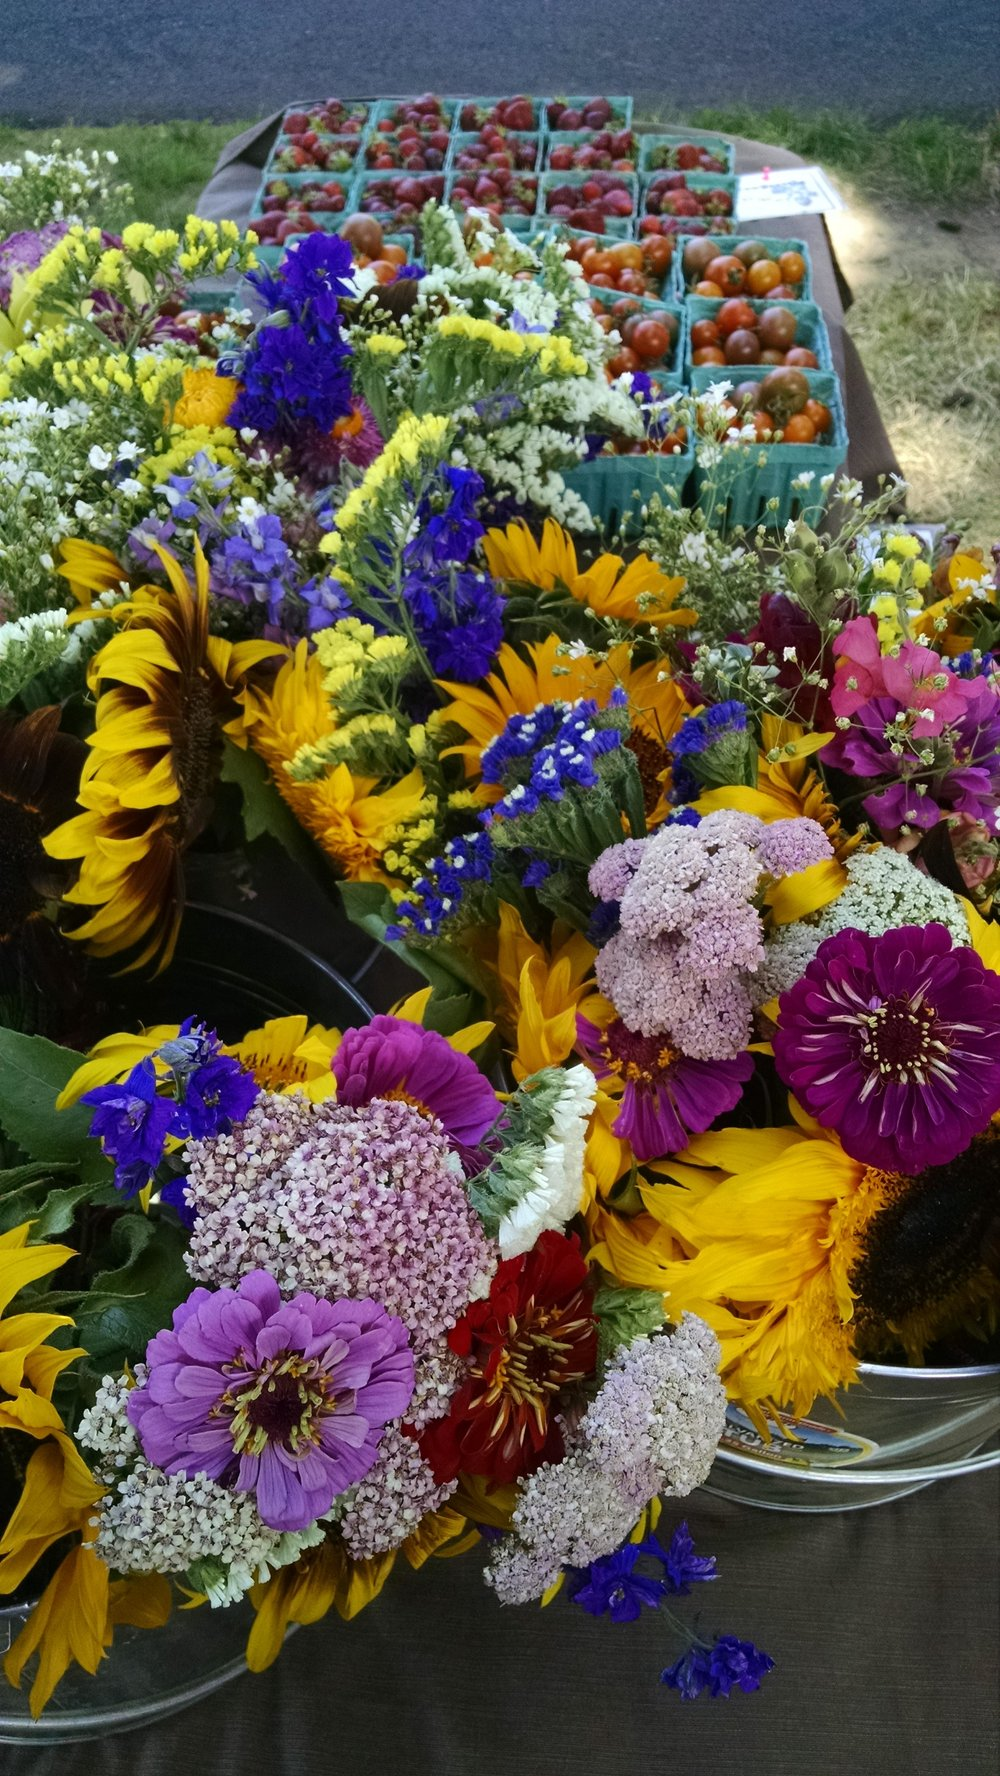 Flower season arrives at the farm stand